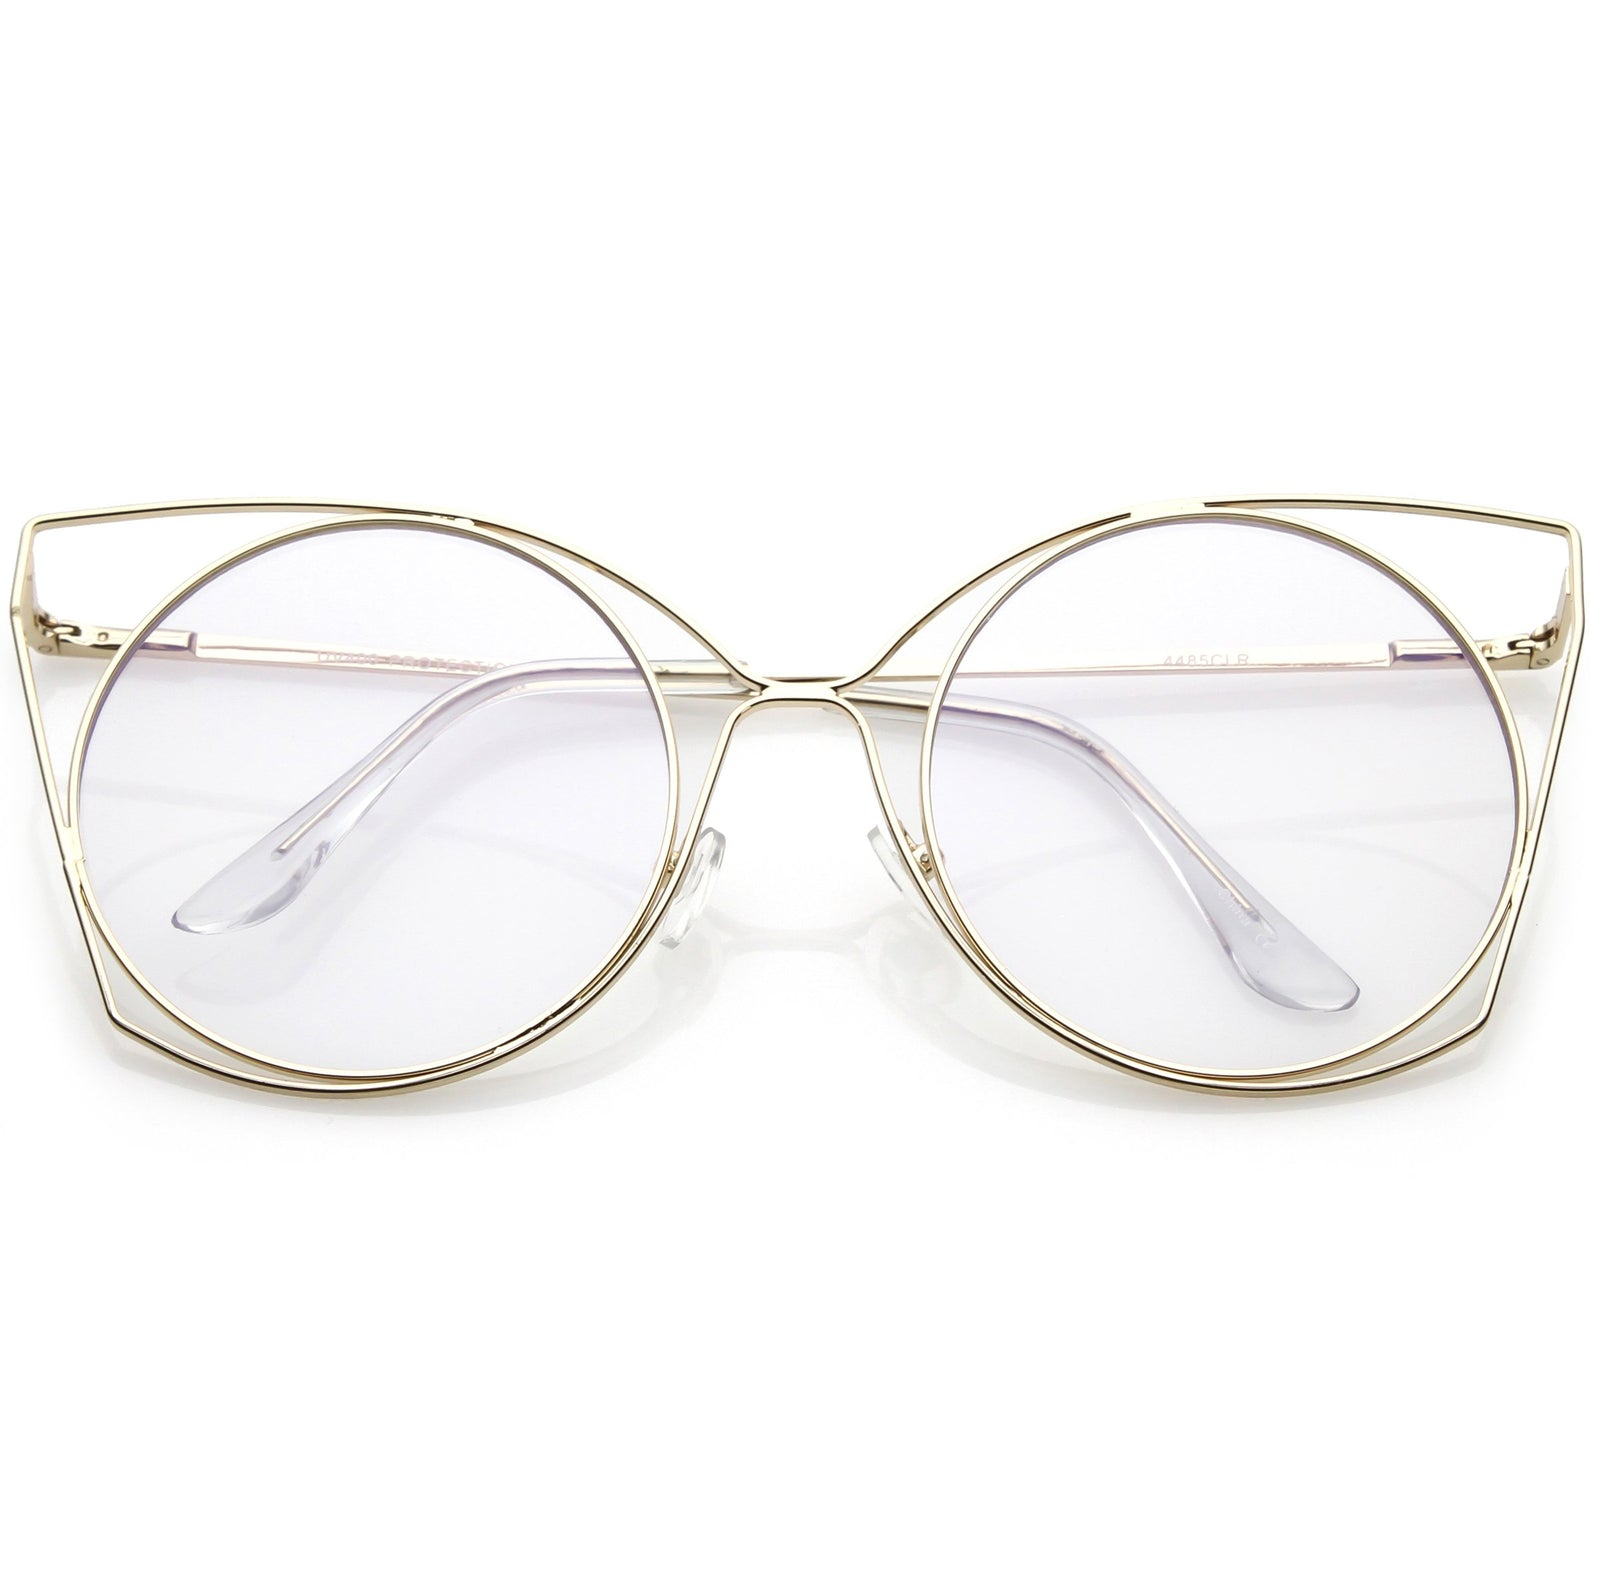 34d10fd558b4 Women s Oversize Laser Cut Round Flat Clear Lens Cat Eye Glasses C347